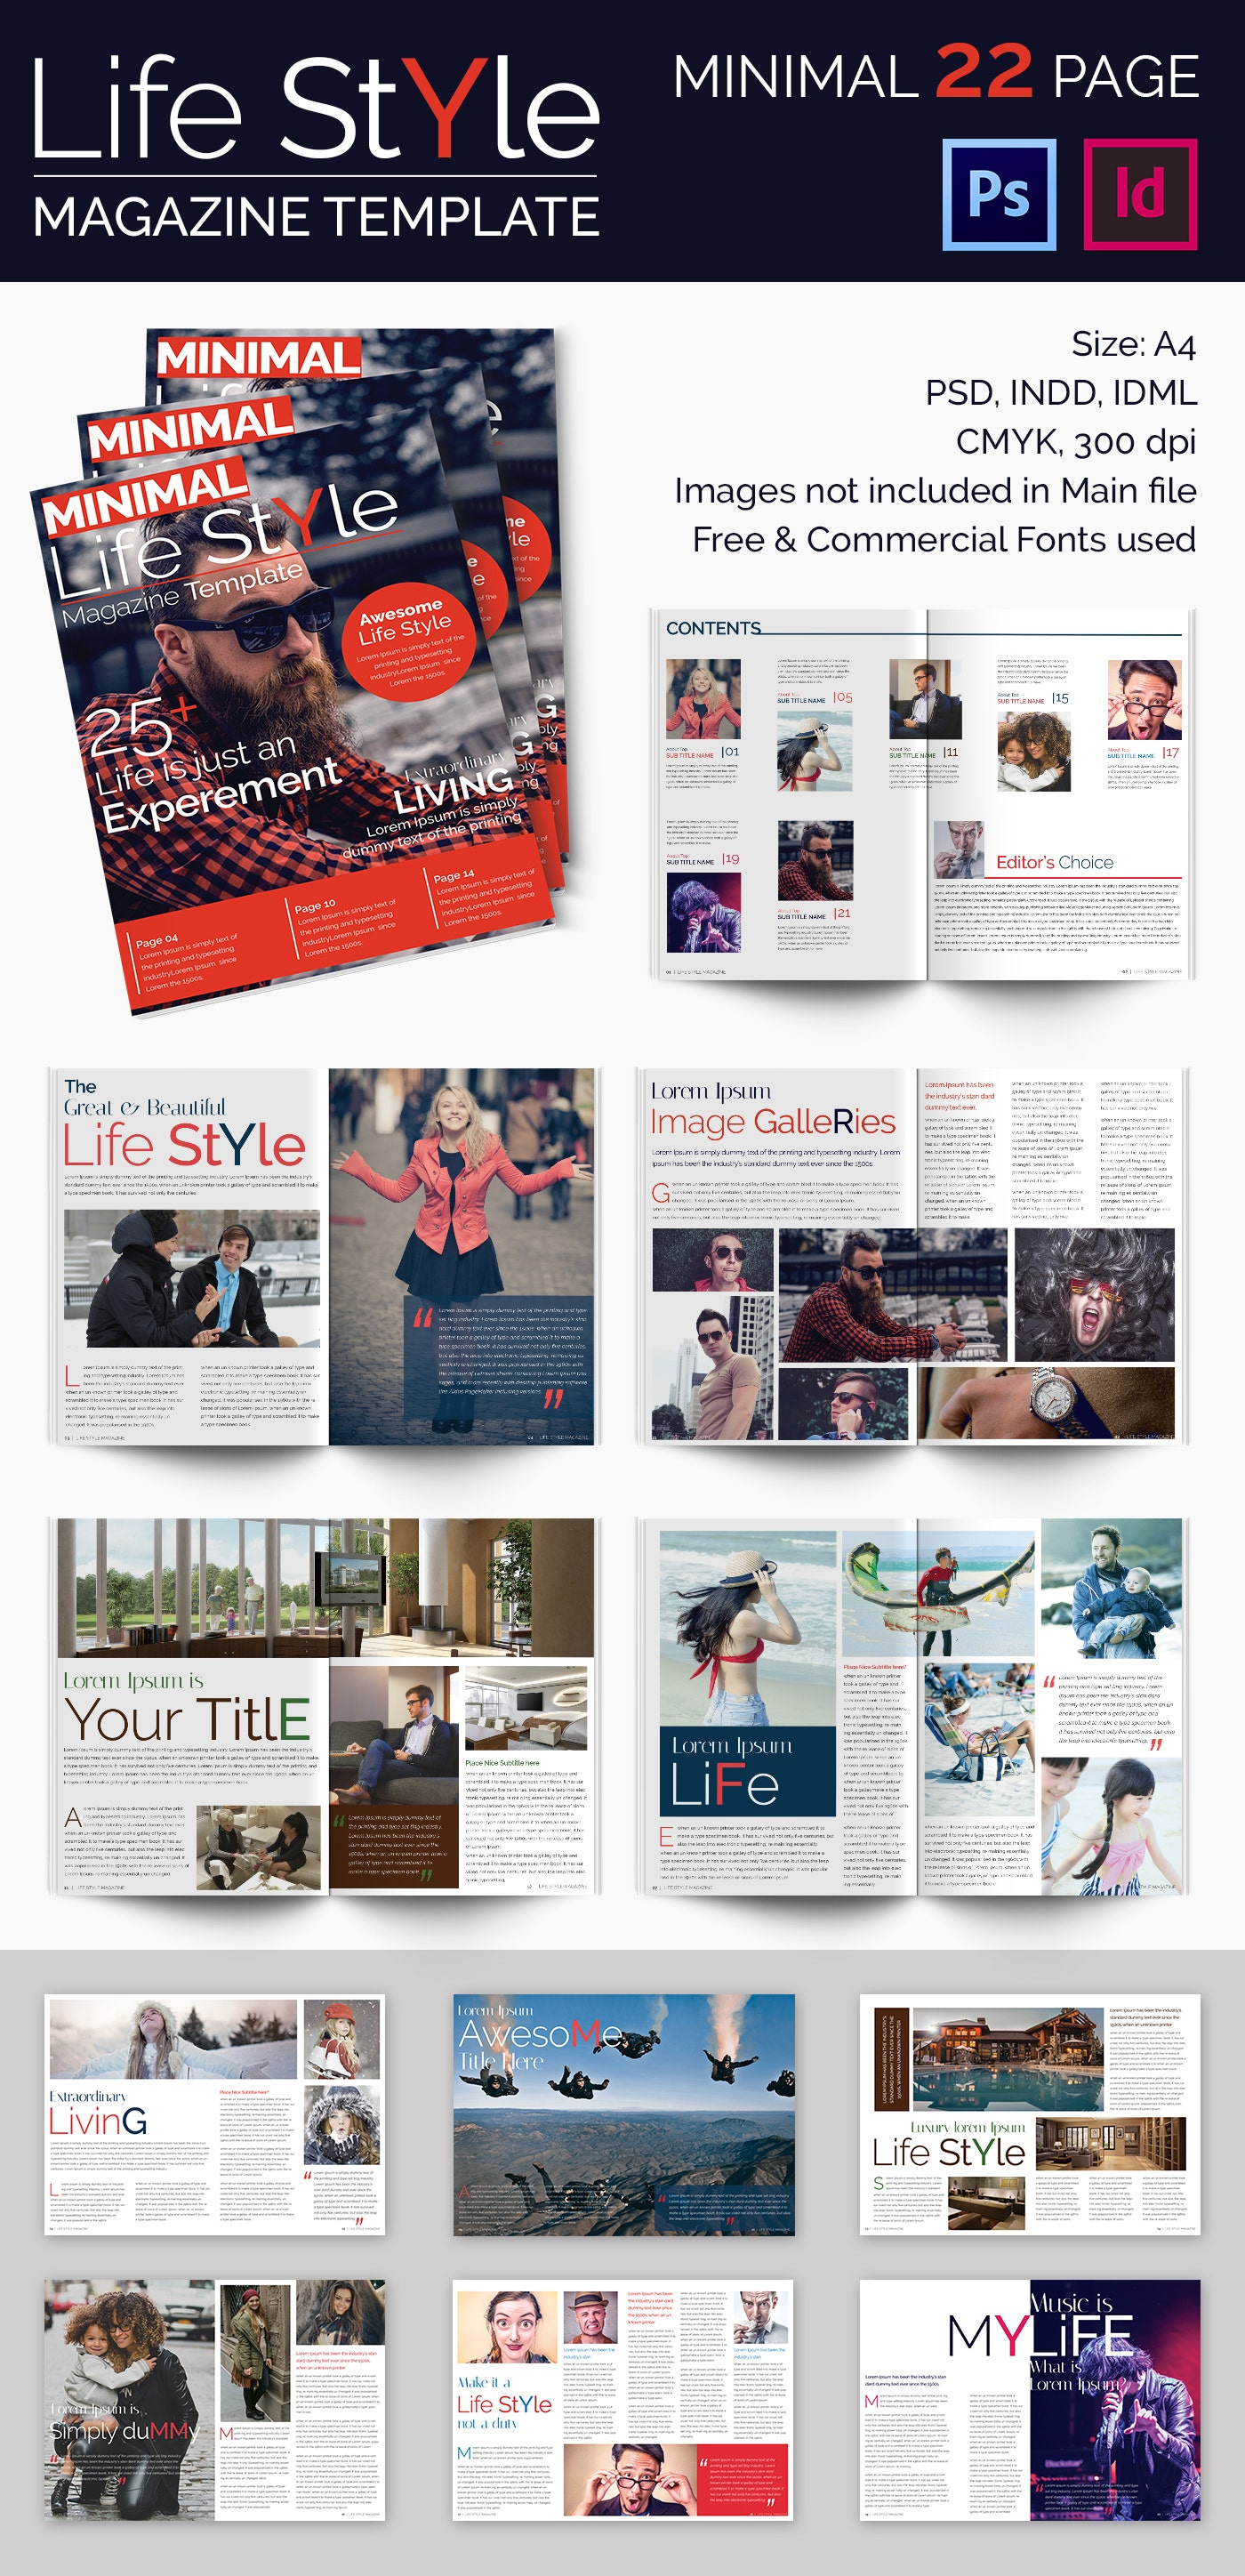 55 brand new magazine templates free word psd eps ai indesign format download free. Black Bedroom Furniture Sets. Home Design Ideas